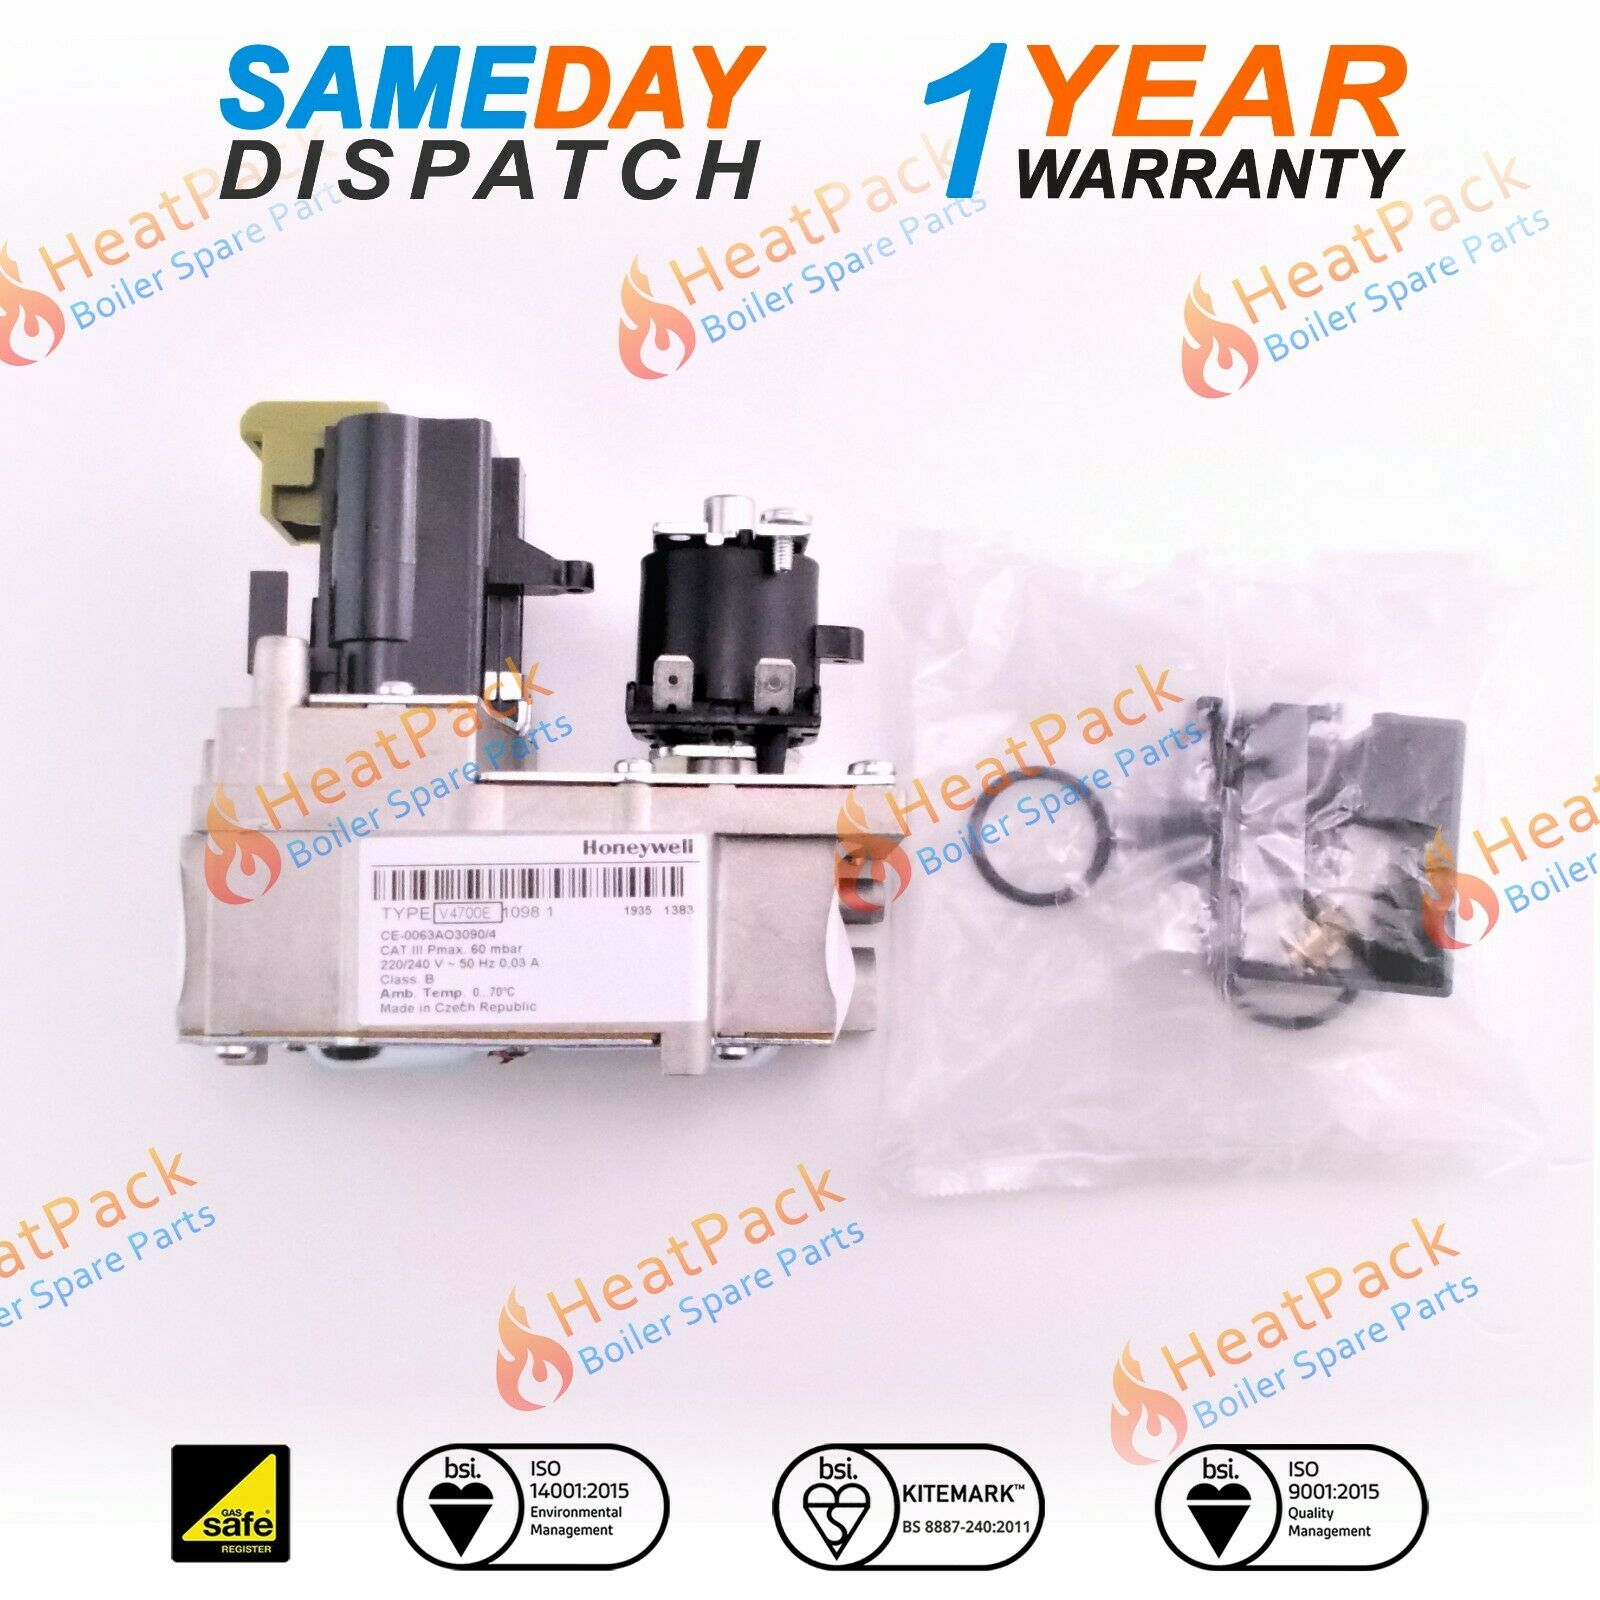 Ideal Boiler Spare Parts